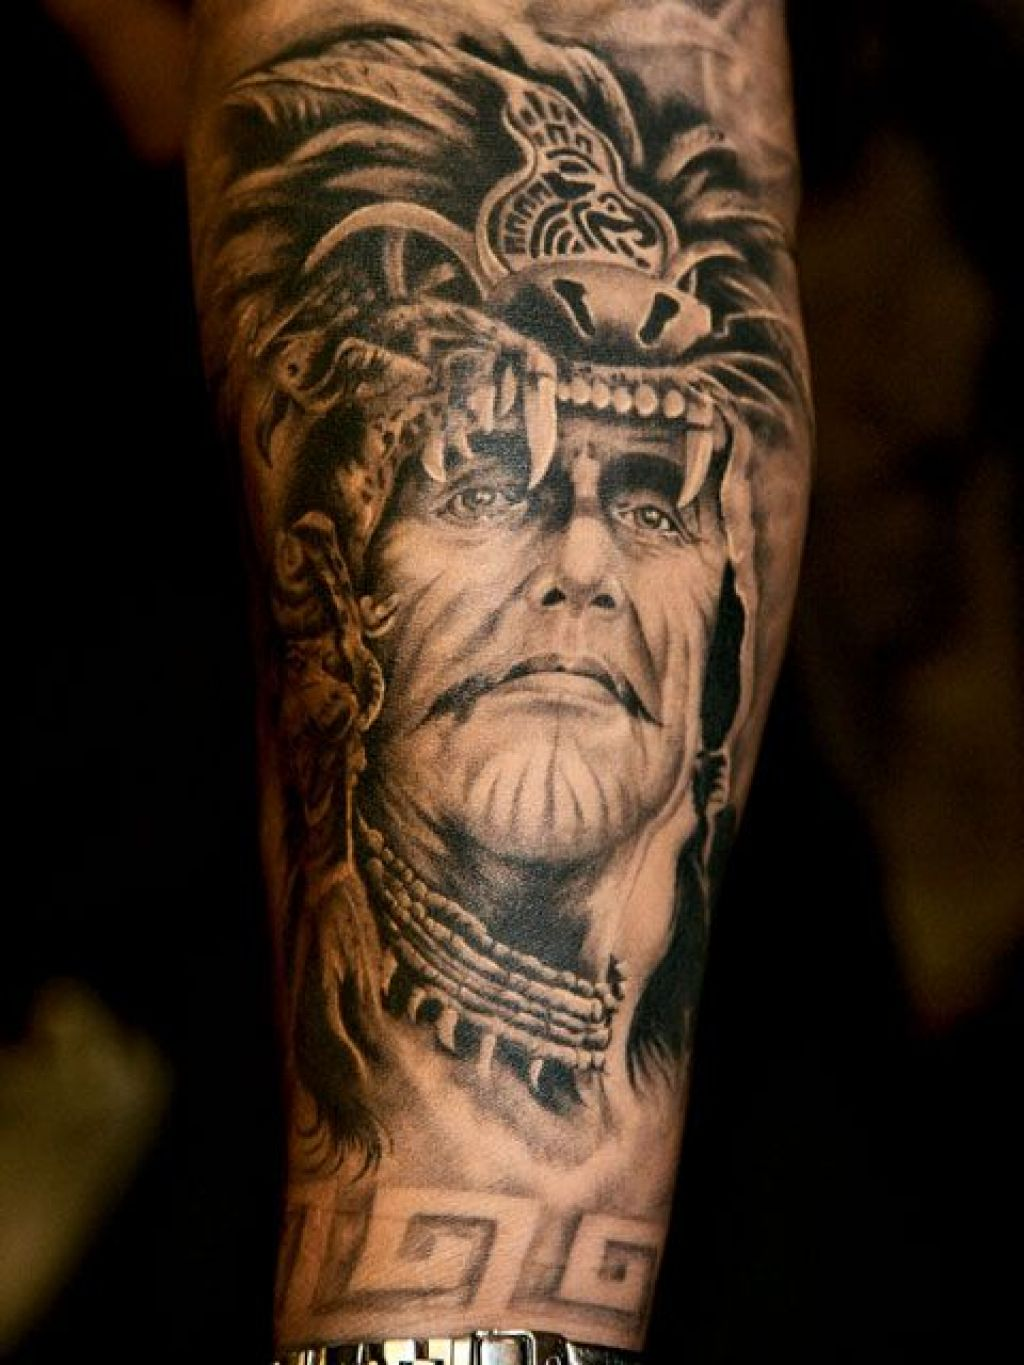 native american warrior tattoo on arm